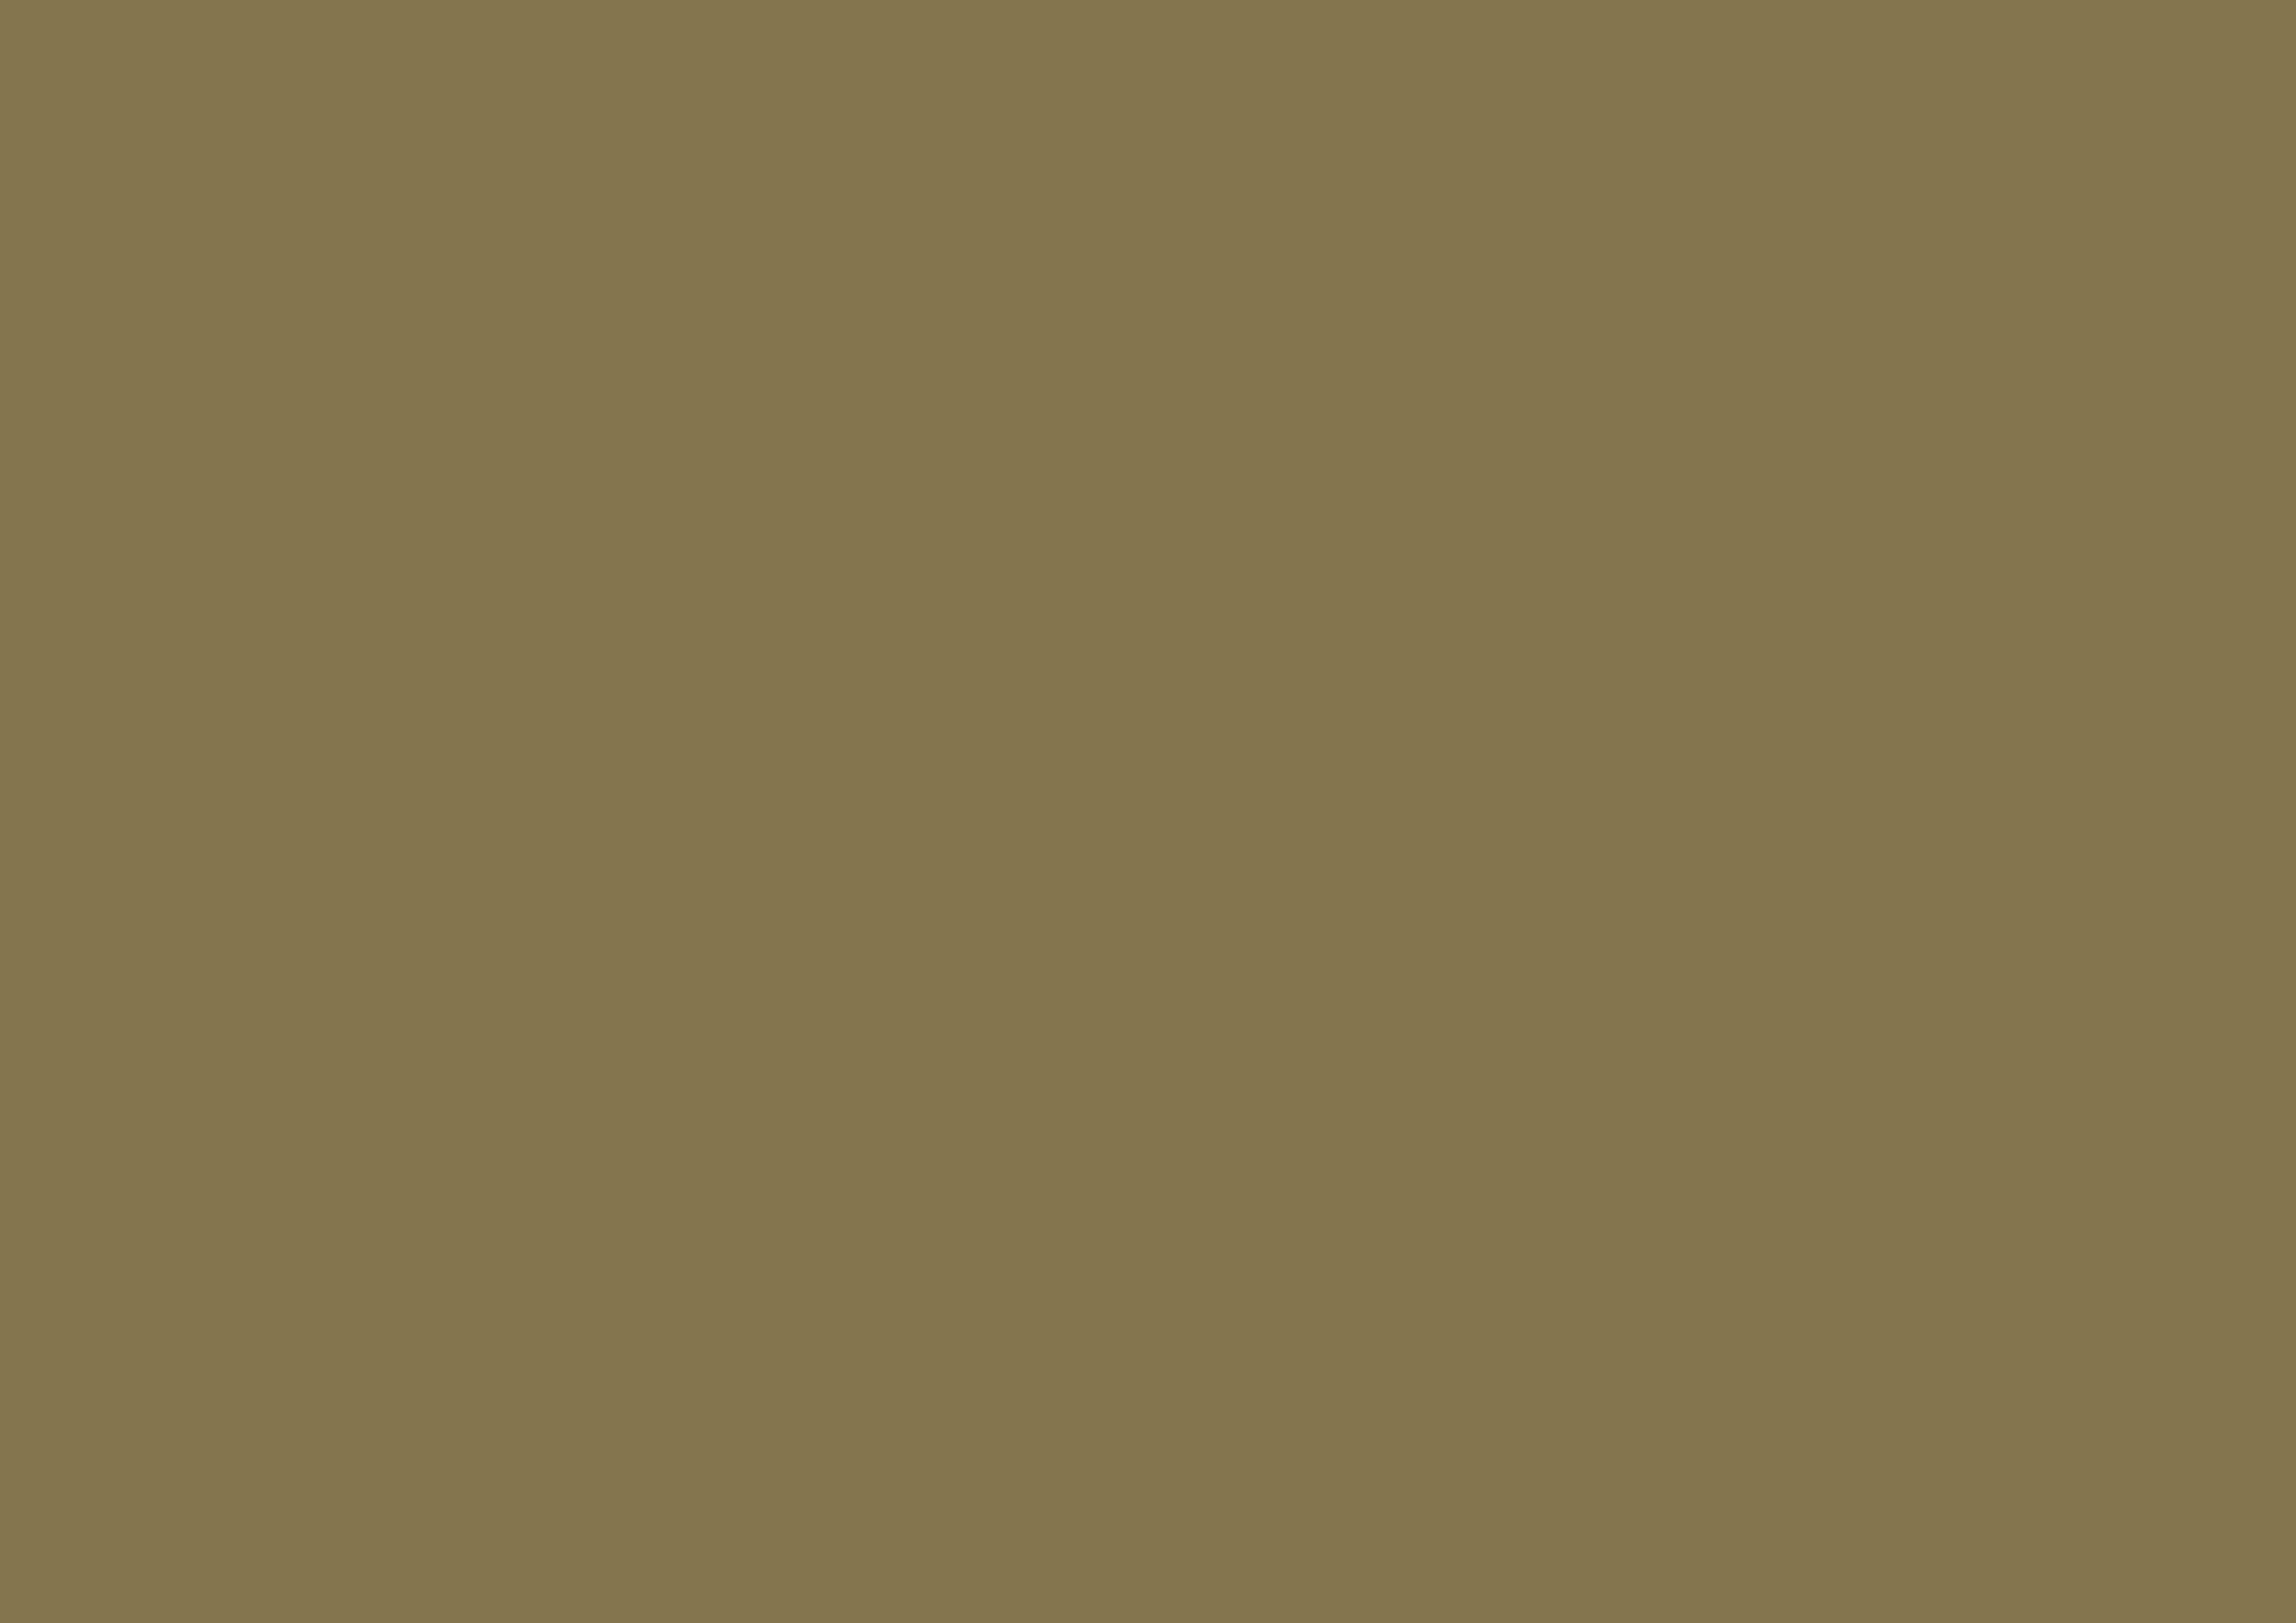 3508x2480 Gold Fusion Solid Color Background